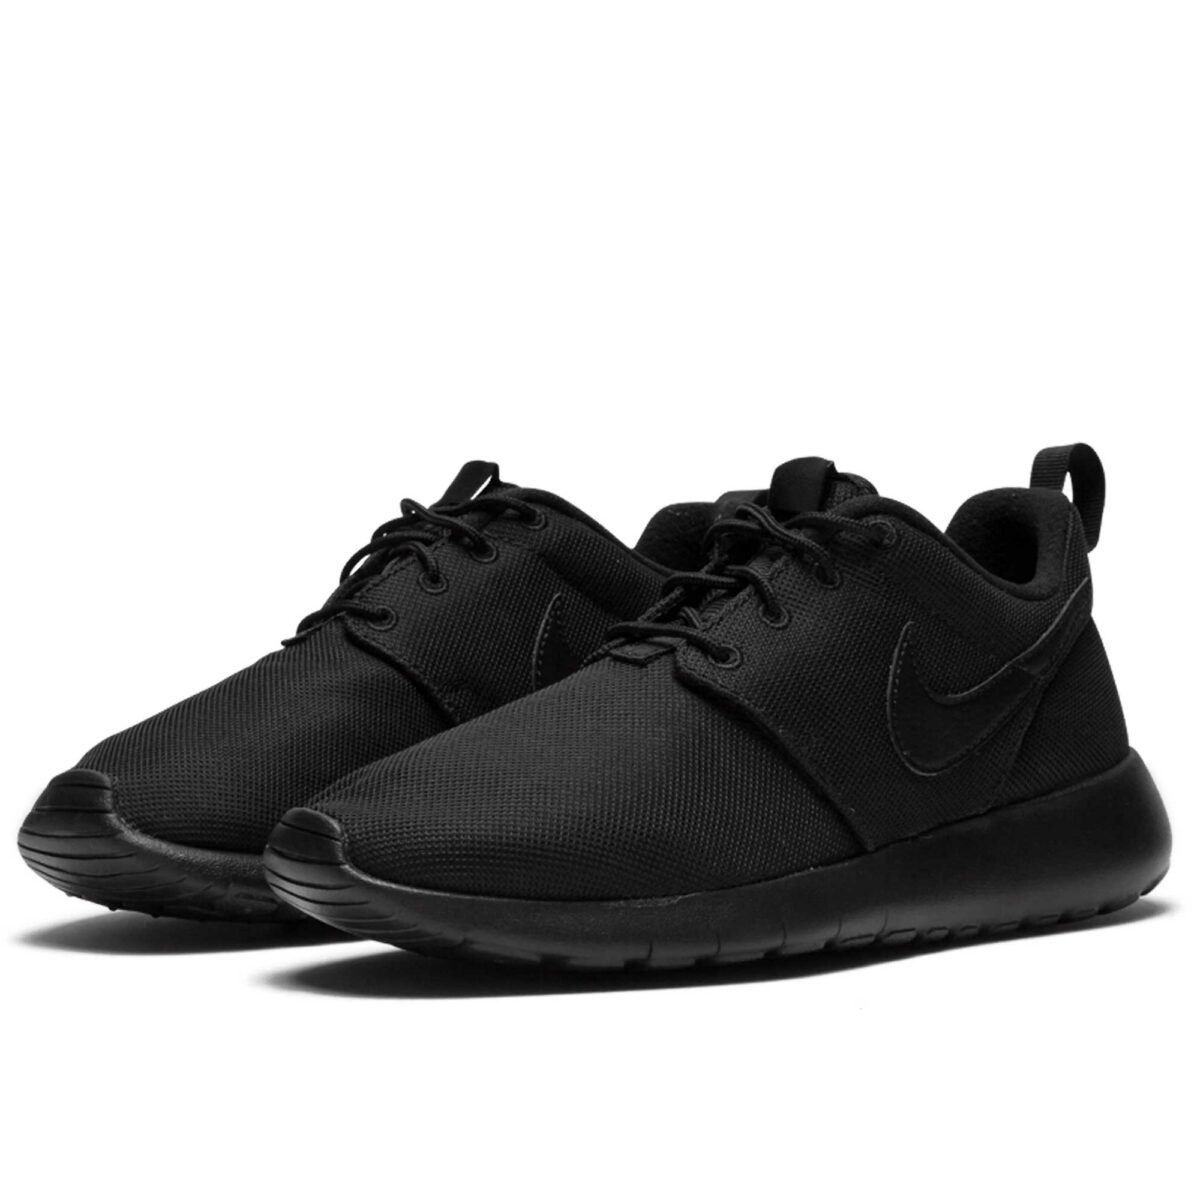 nike roshe one all black 599728_031 купить